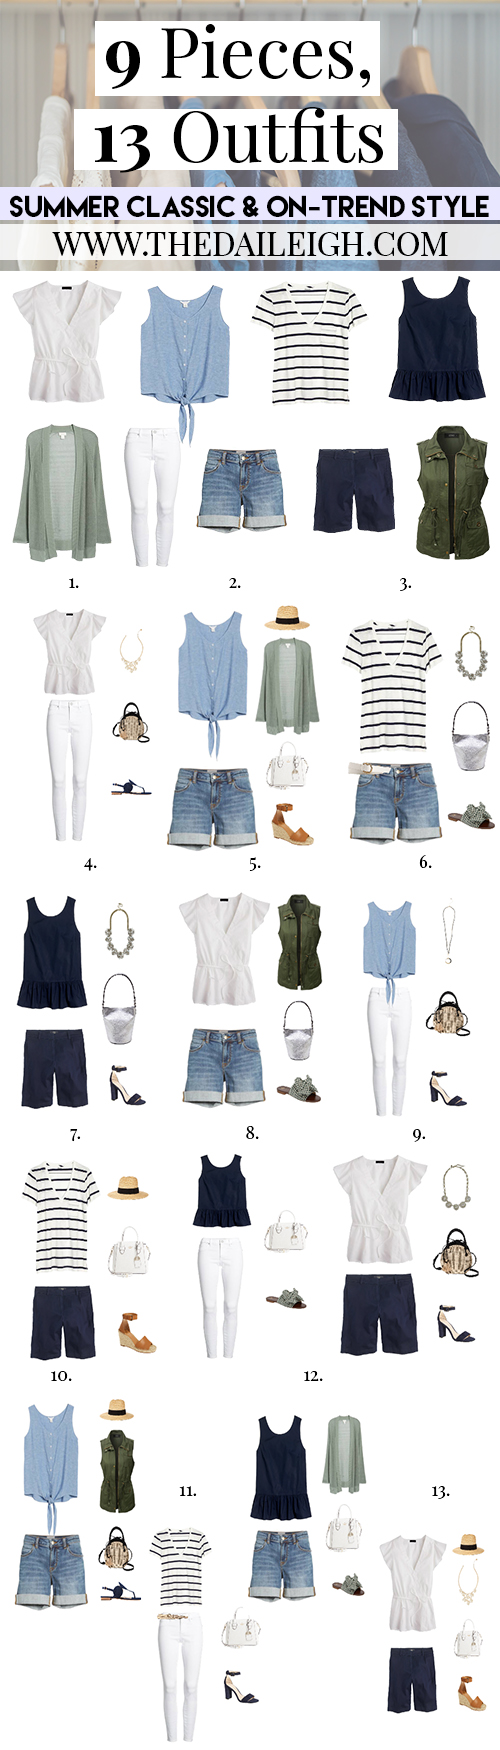 9 Pieces, 13 Outfits - Summer Classic And On-Trend Style